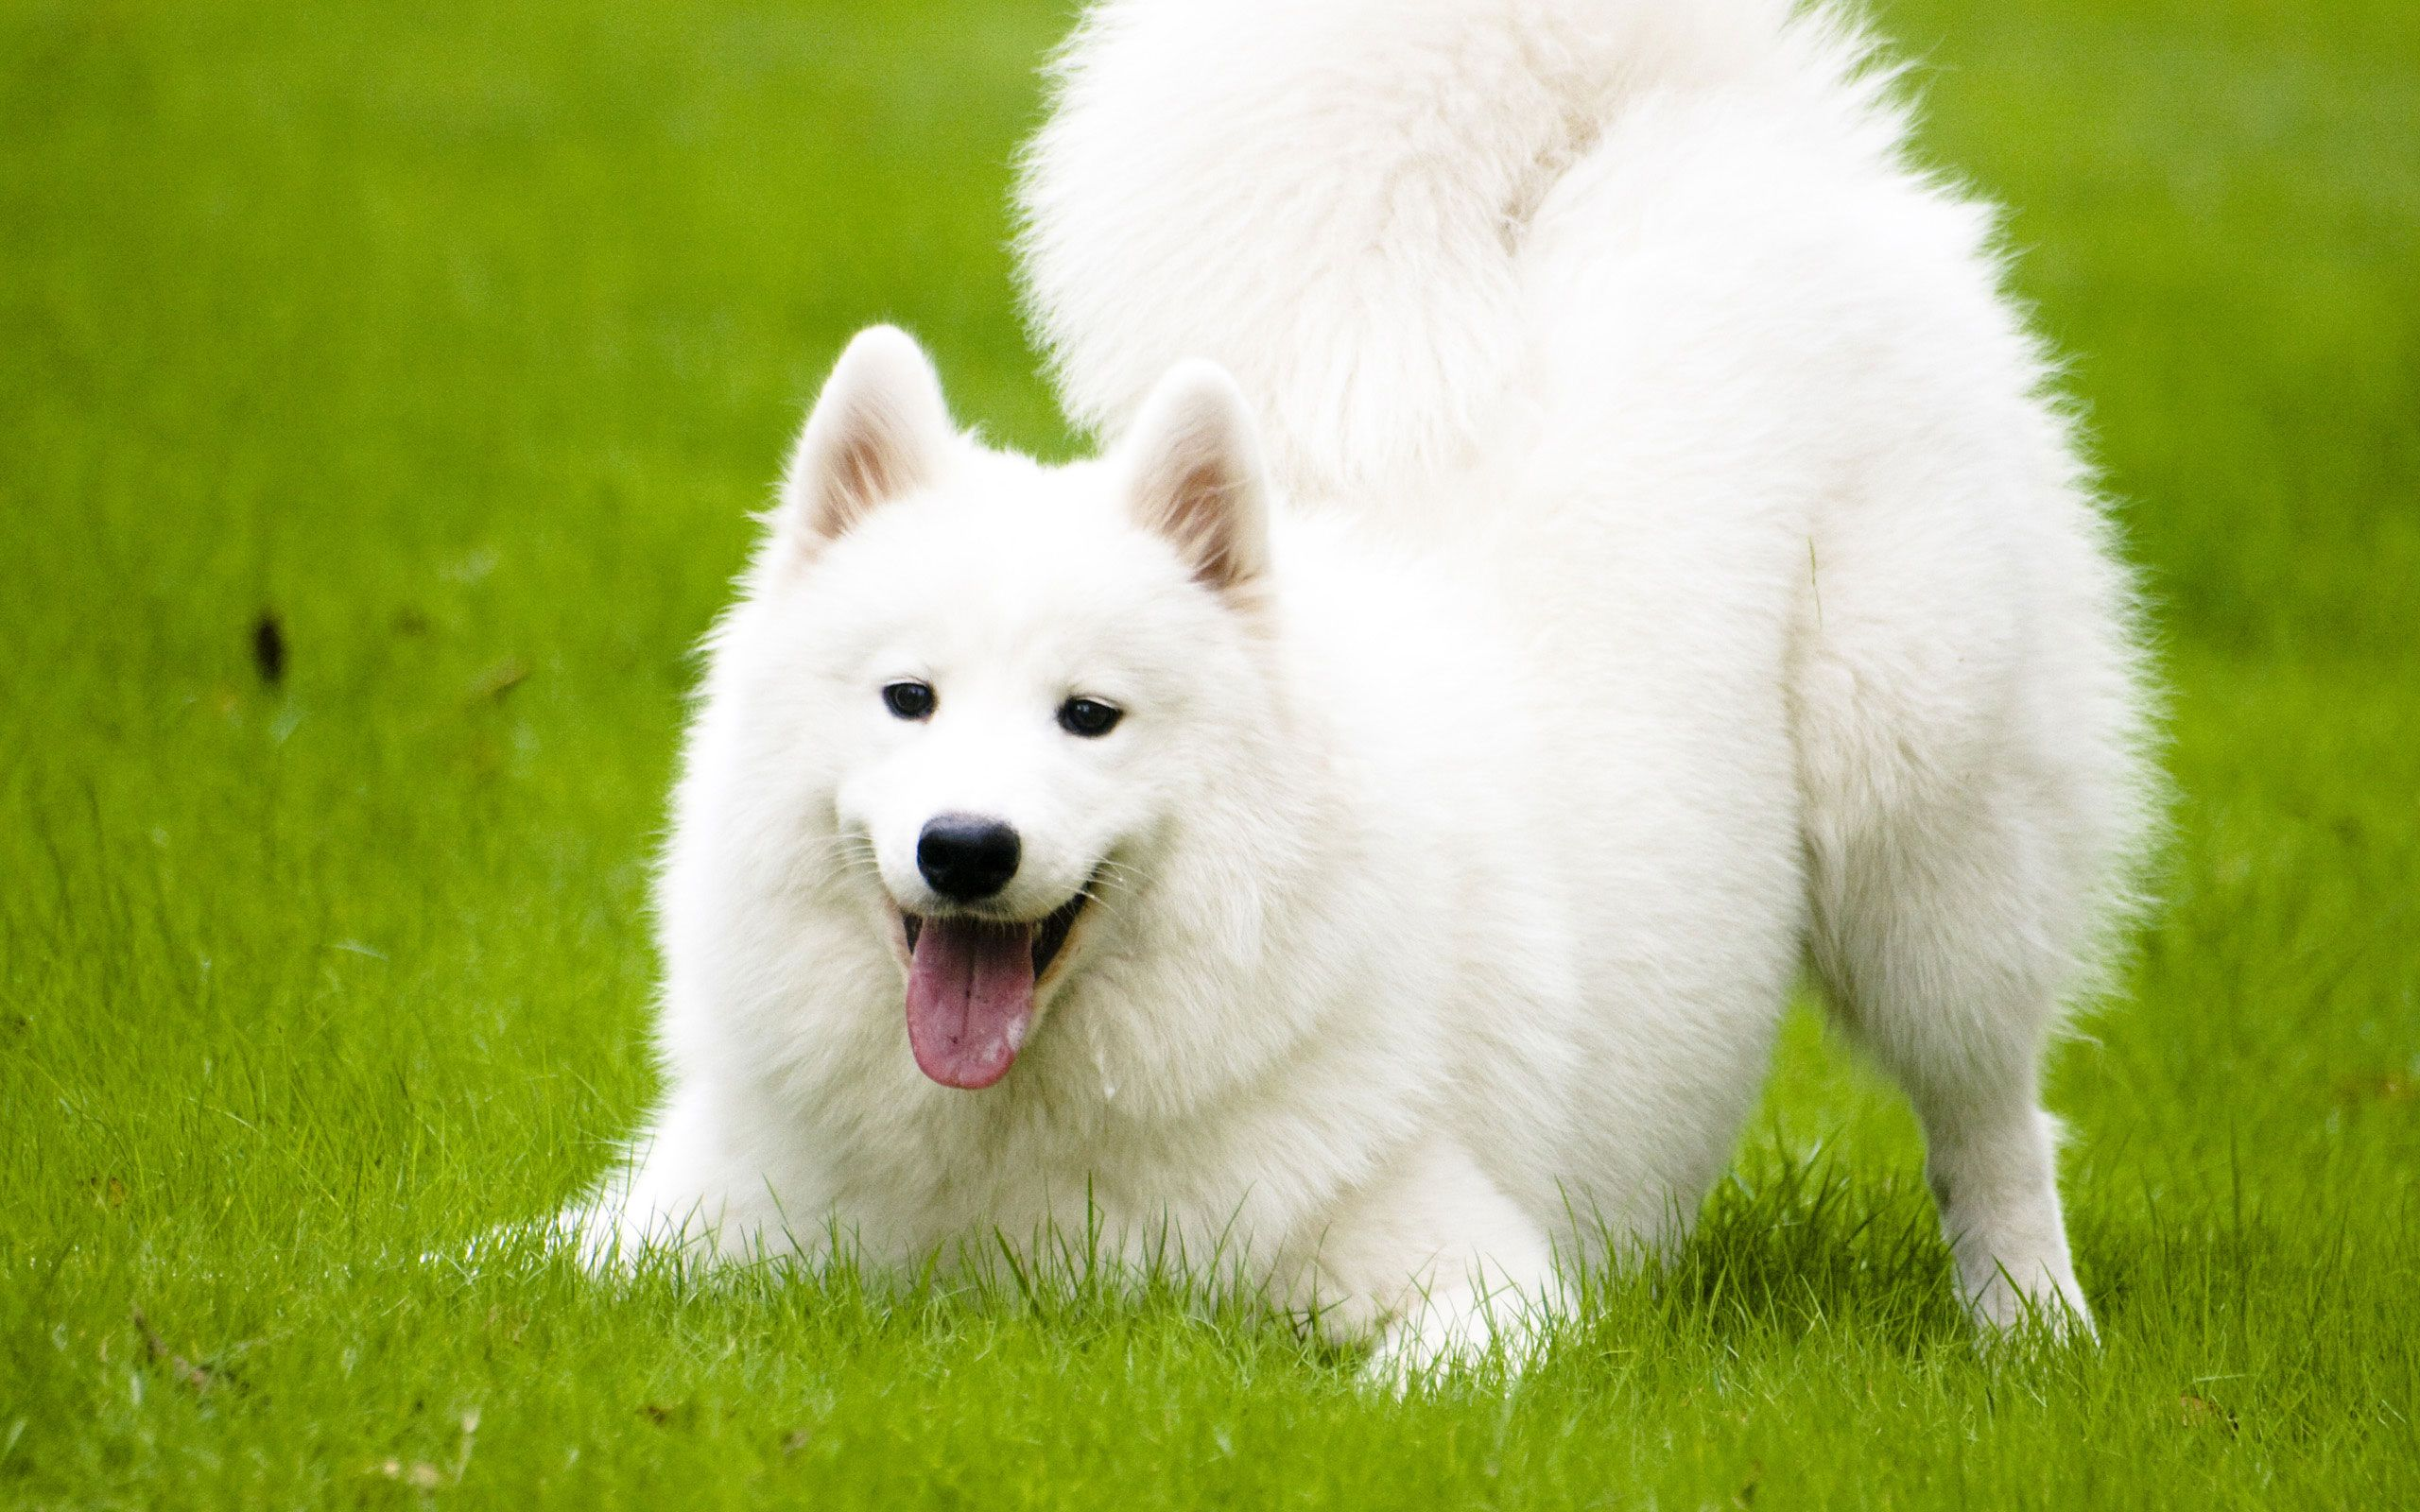 Funny Dog Wallpaper Dog Samoyed 2560x1600 Wallpaper Teahub Io